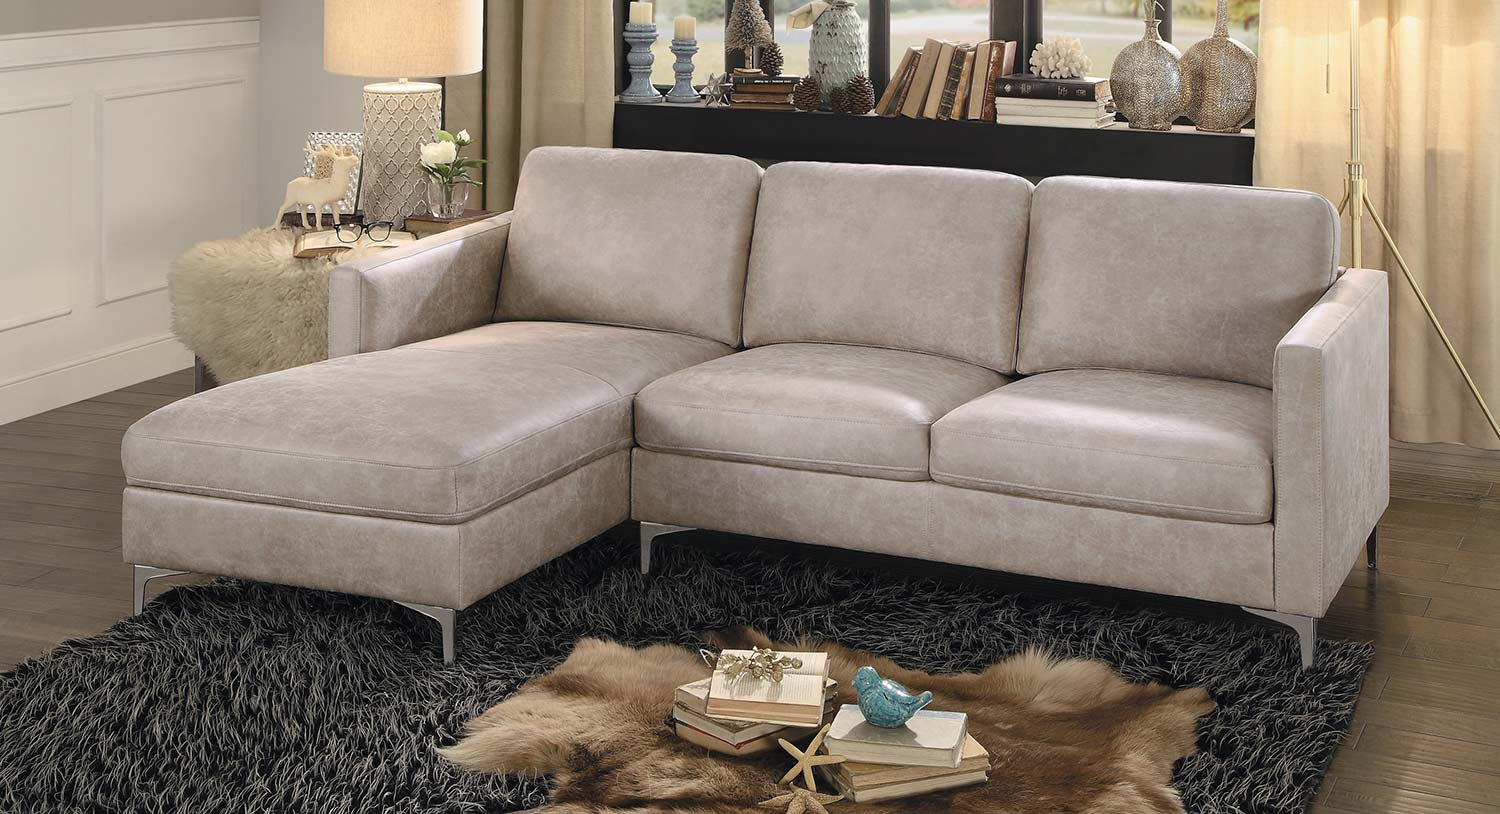 Homelegance Breaux Sectional Sofa - Sesame Fabric